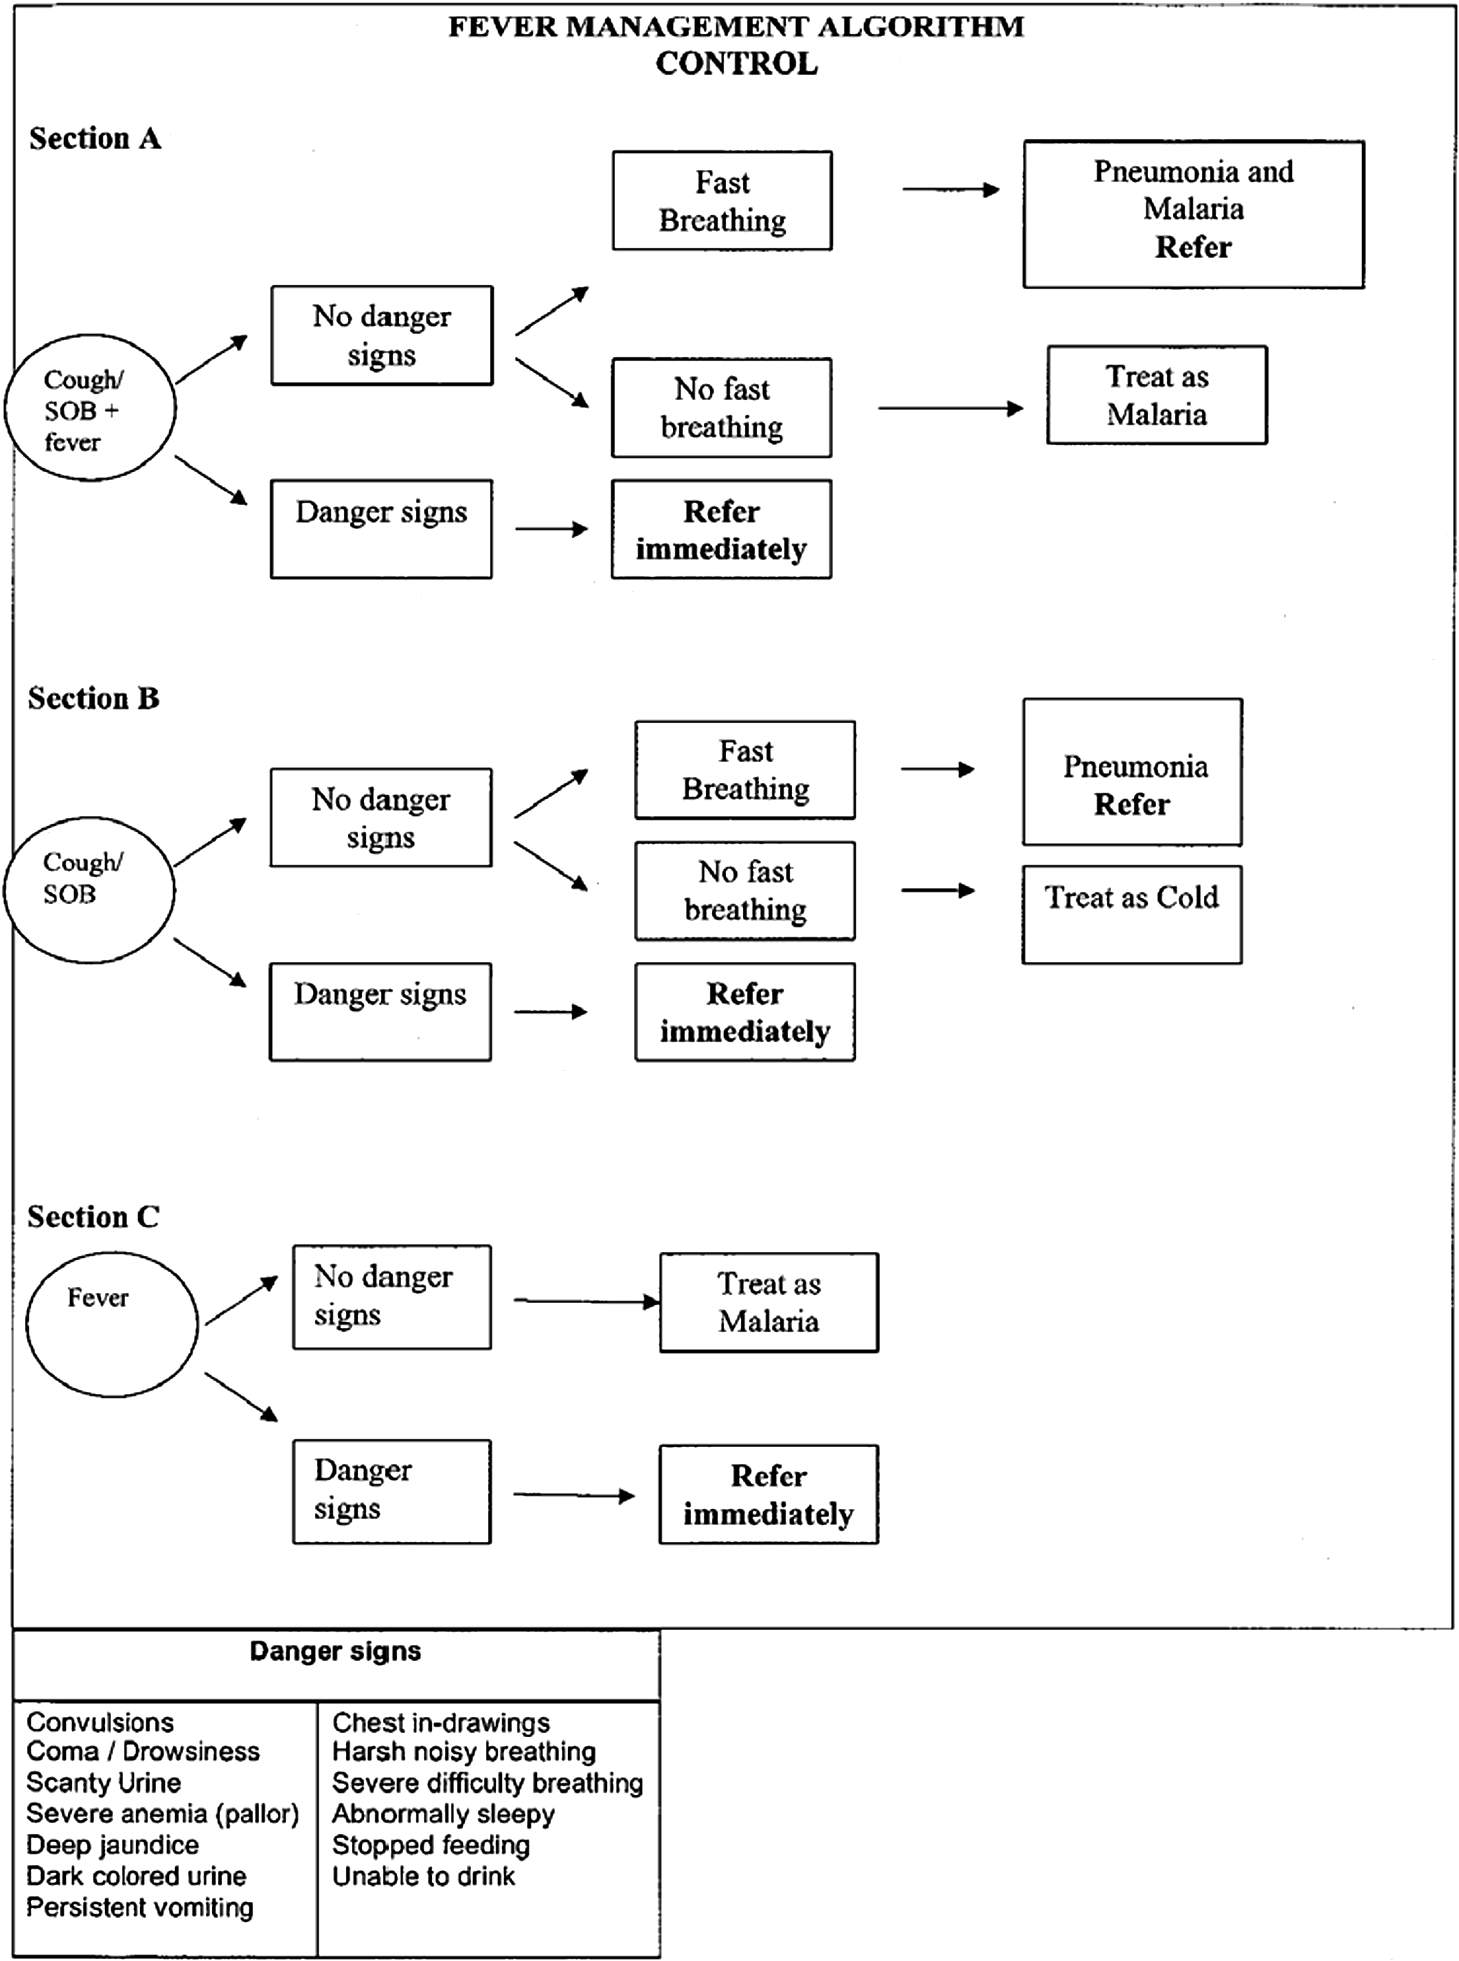 Treatment algorithm for Control Community Health Workers.